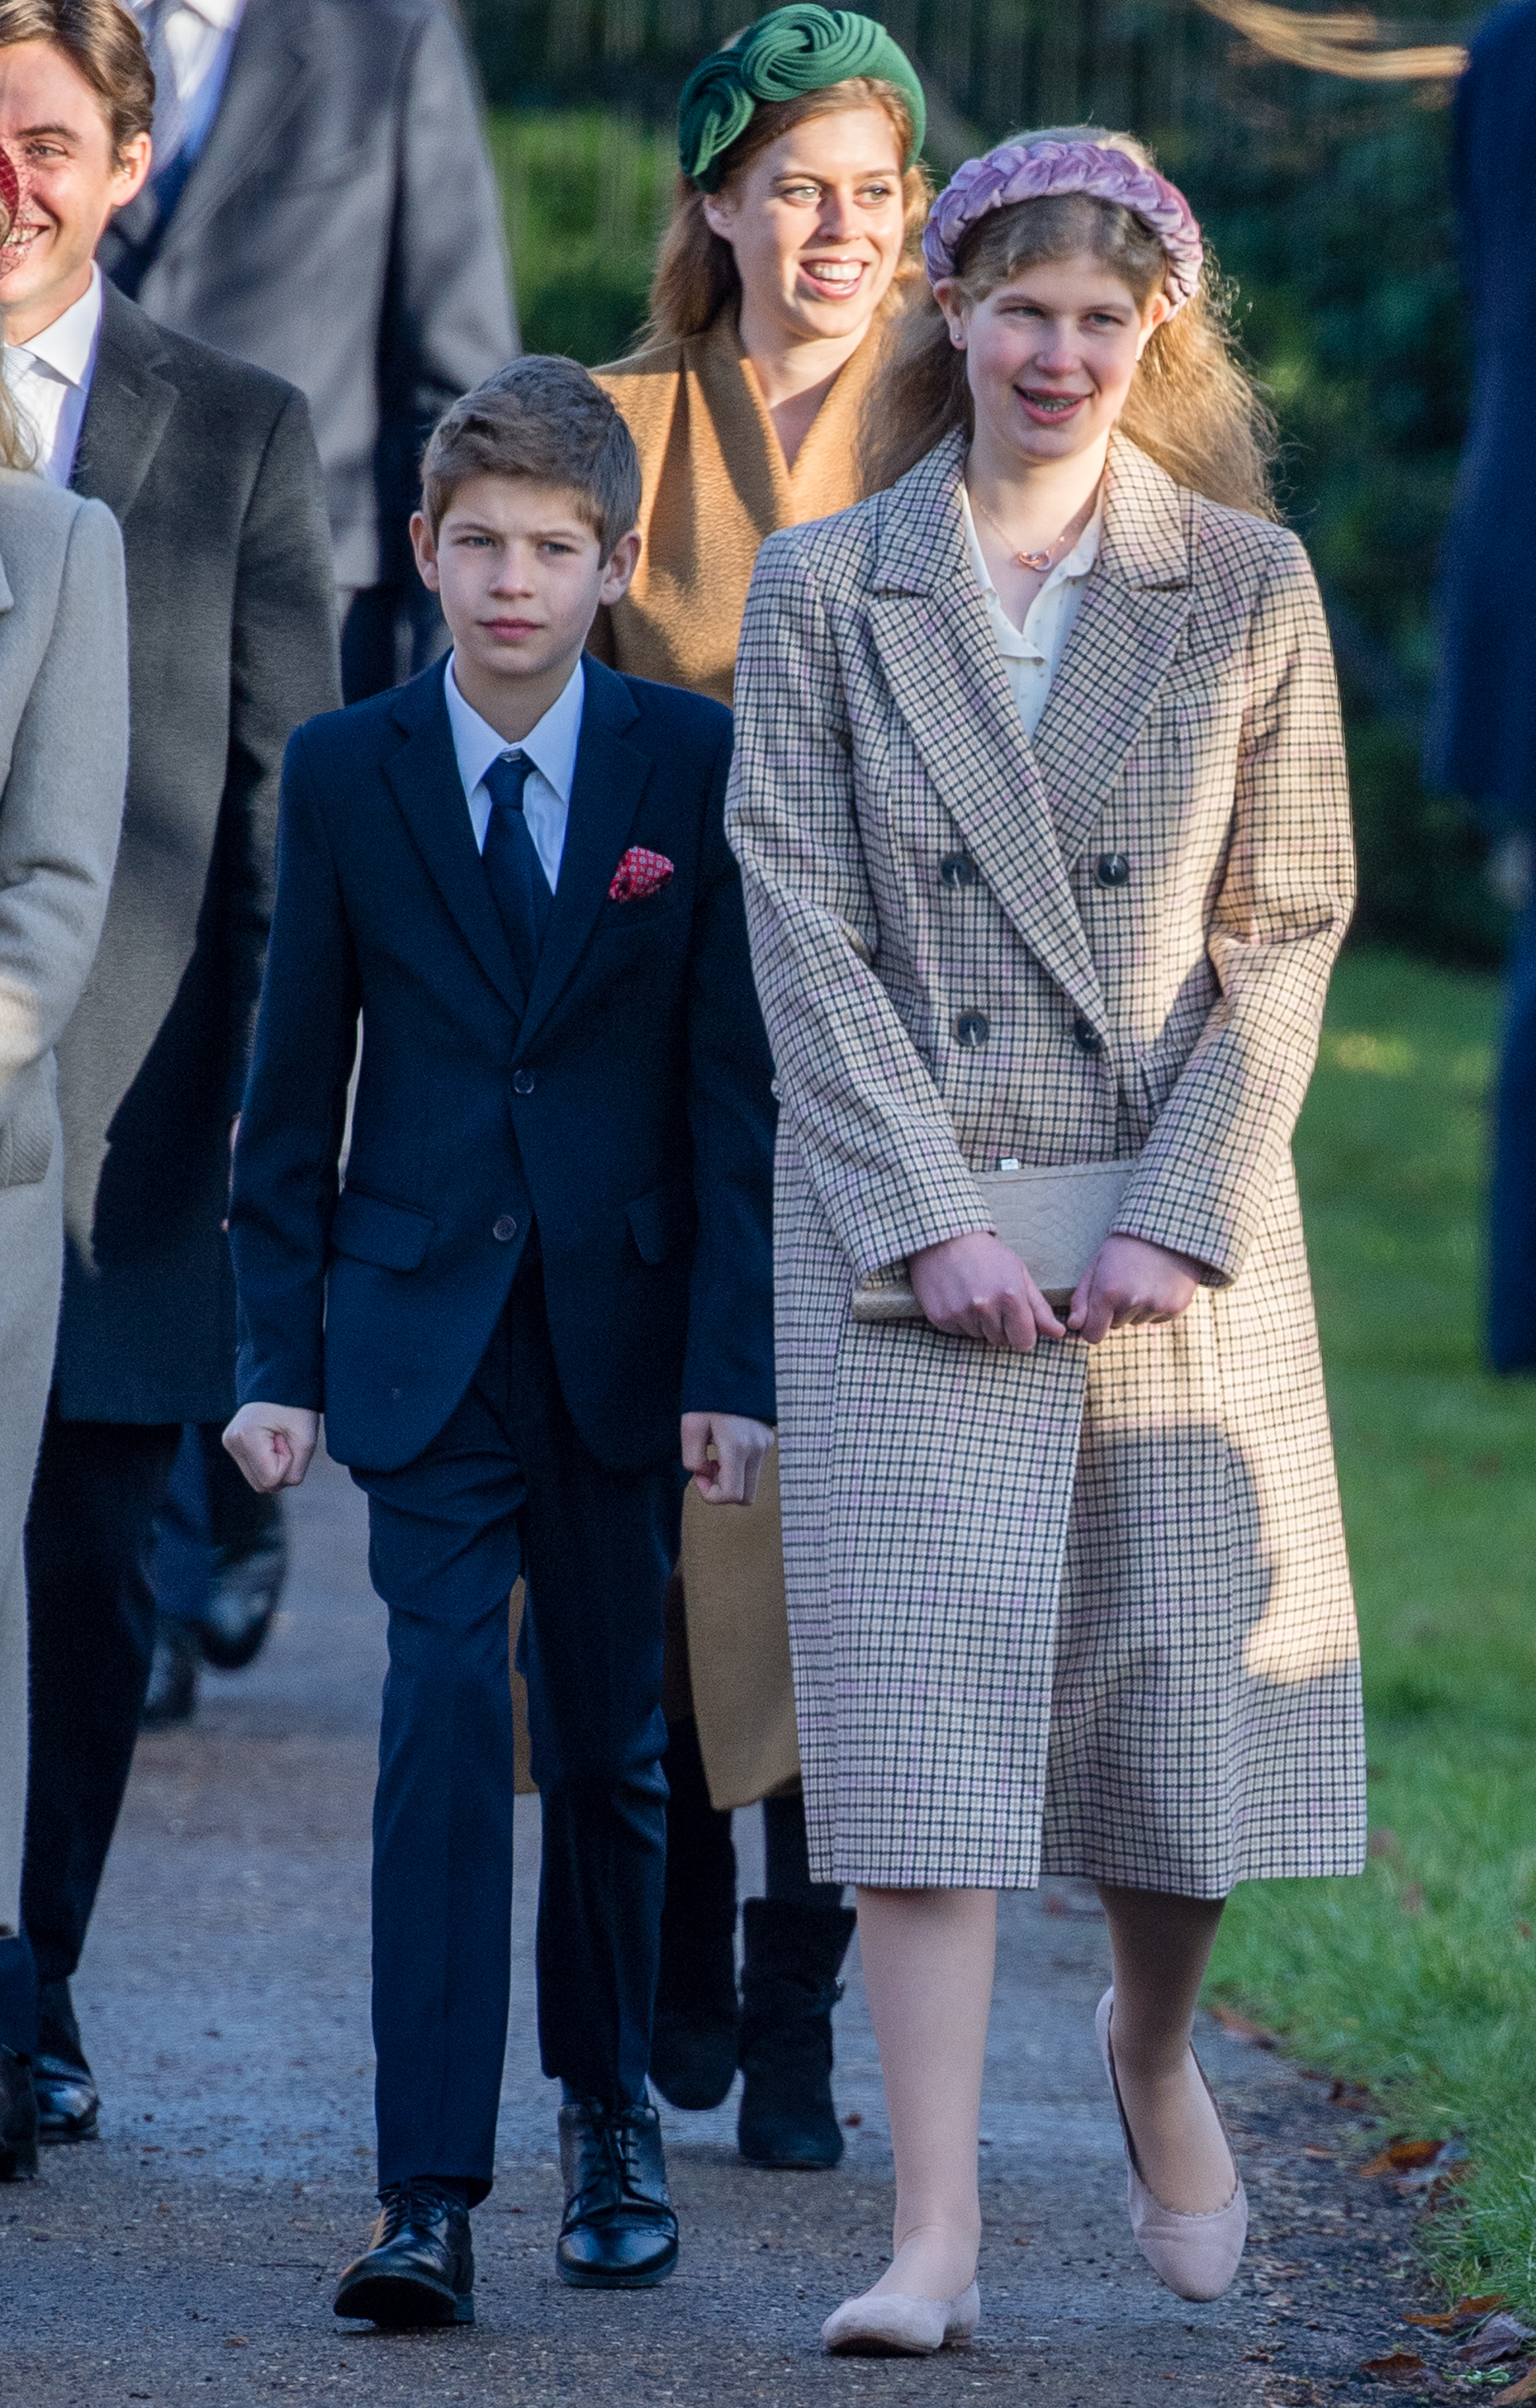 KING'S LYNN, ENGLAND - DECEMBER 25: James Viscount Severn and Lady Louise Windsor  attend the Christmas Day Church service at Church of St Mary Magdalene on the Sandringham estate on December 25, 2019 in King's Lynn, United Kingdom. (Photo by Pool/Samir Hussein/WireImage)